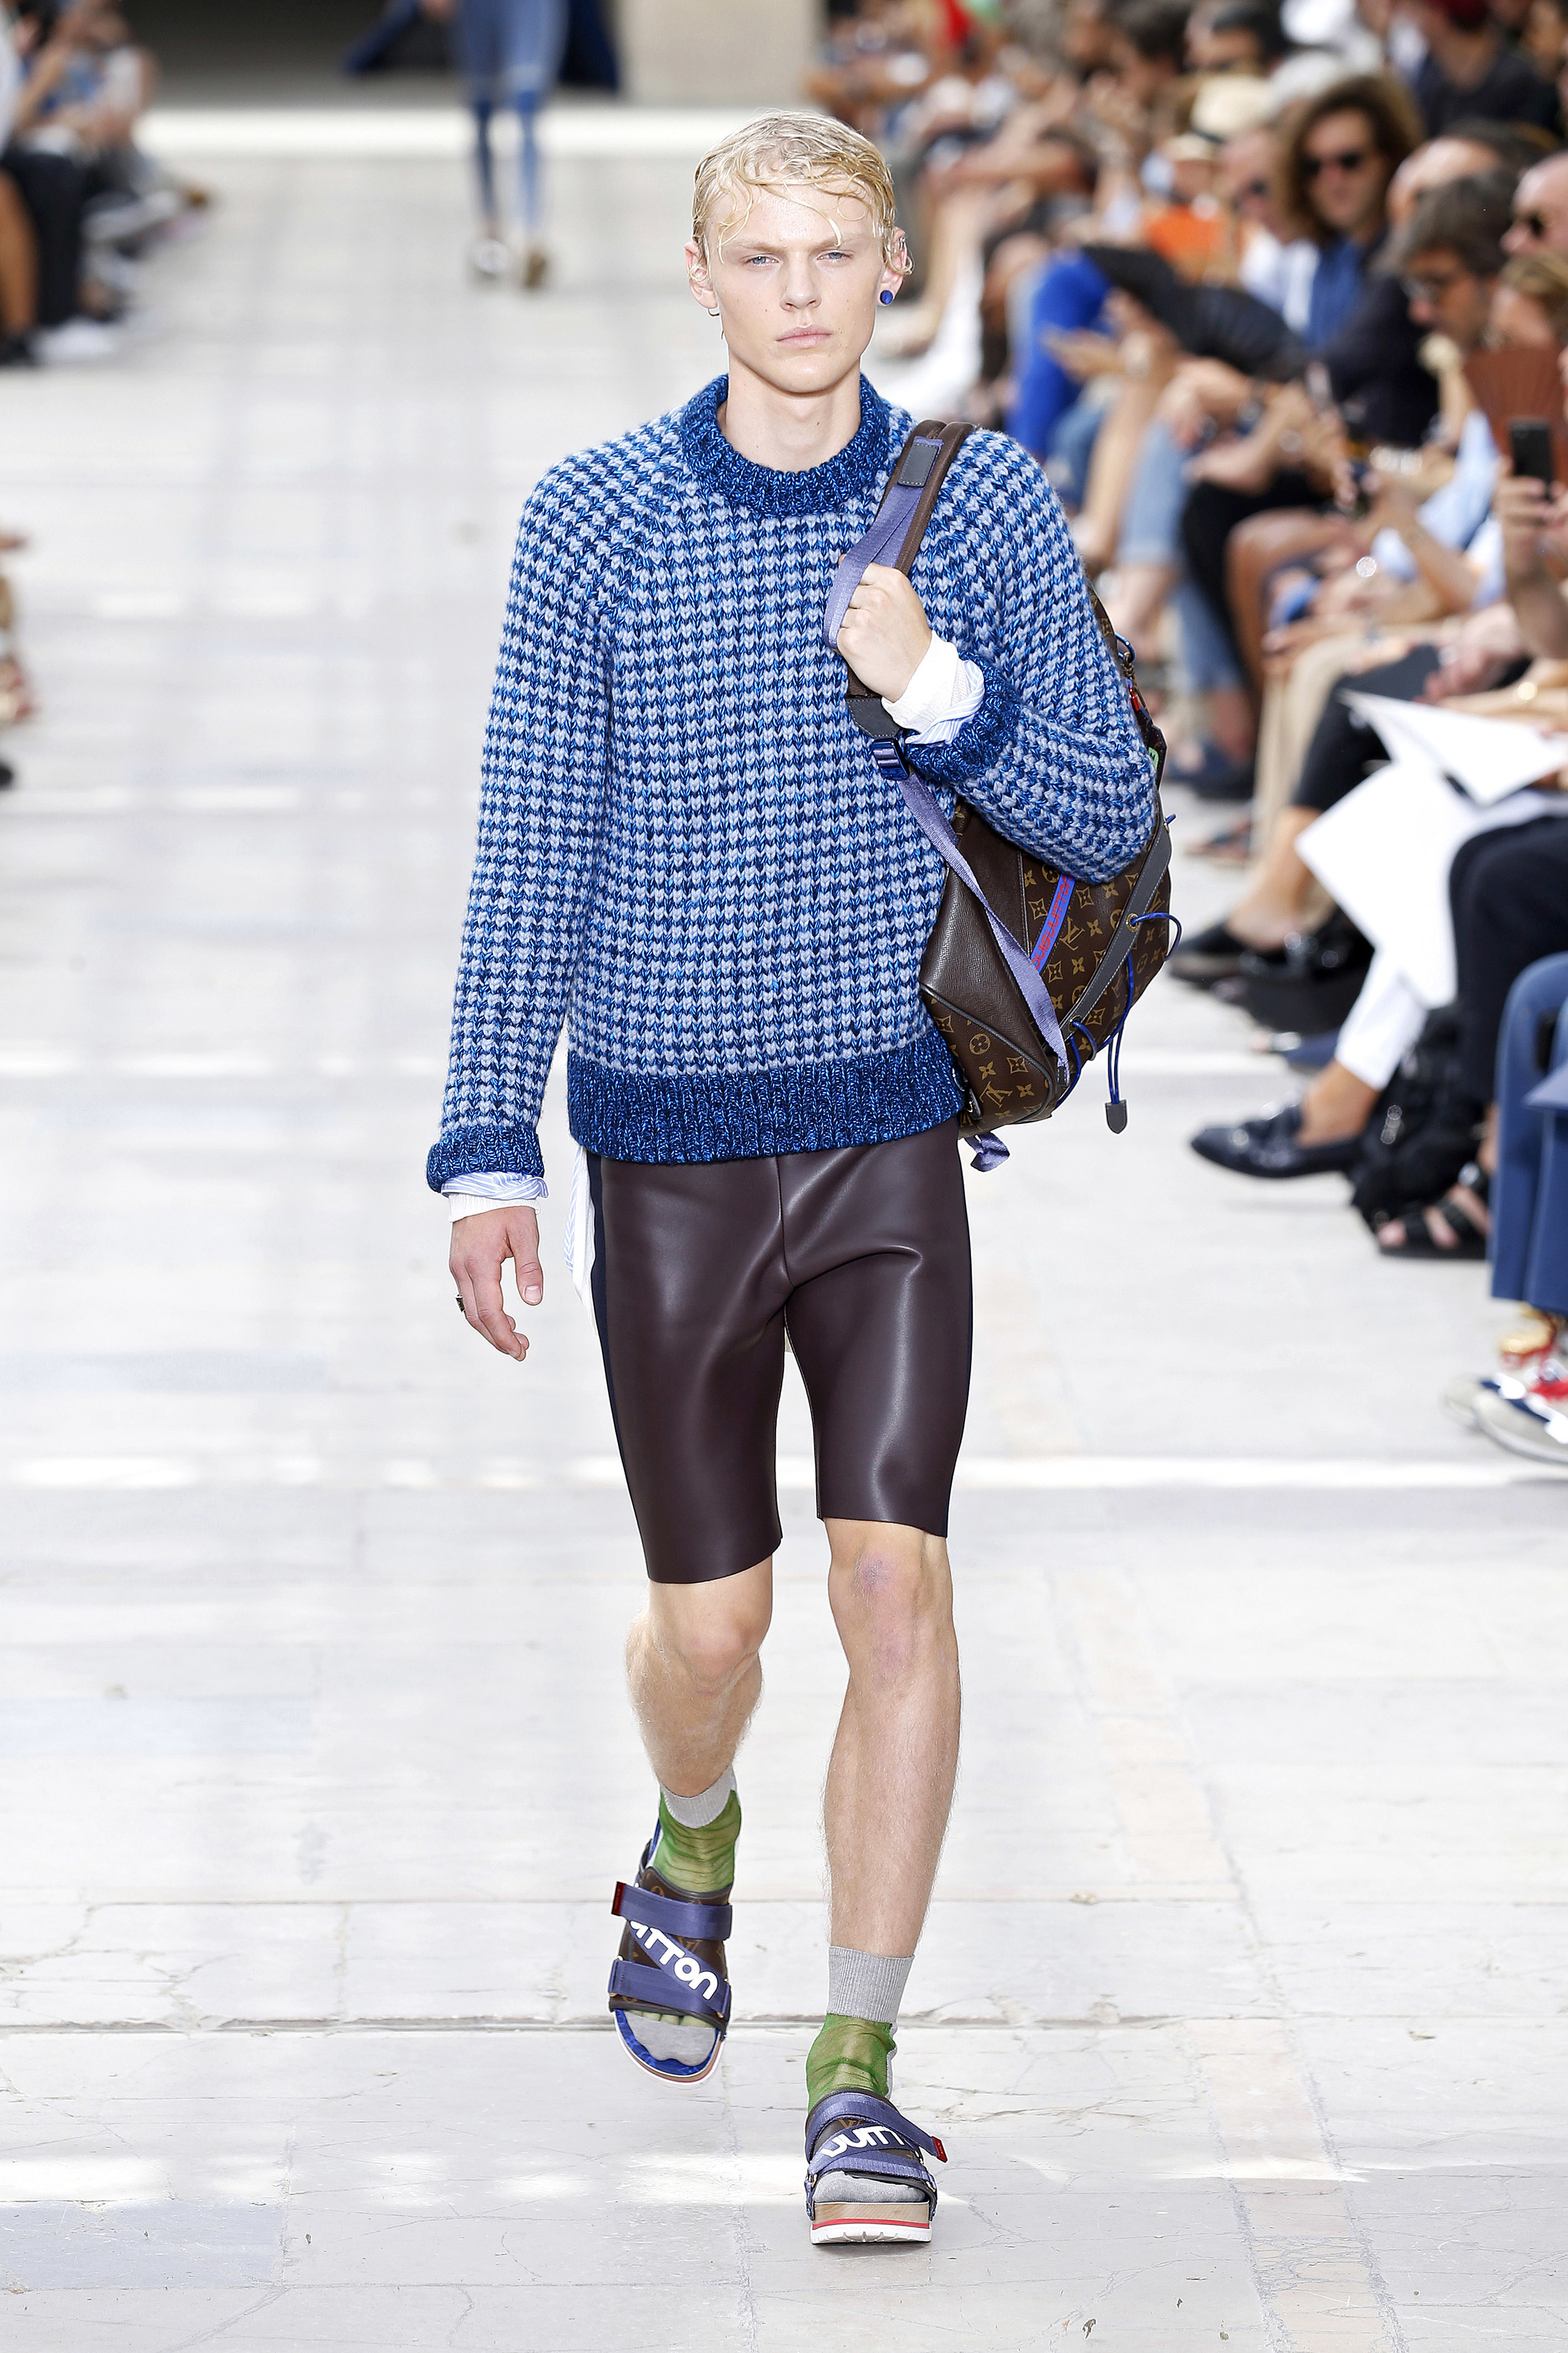 Paris Fashion Week Menswear Spring/Summer 2018 - Louis Vuitton - Catwalk  Featuring: Model Where: Paris, France When: 22 Jun 2017 Credit: Marcio Madeira/News Pictures/WENN.com  **Only available for publication in UK & USA**